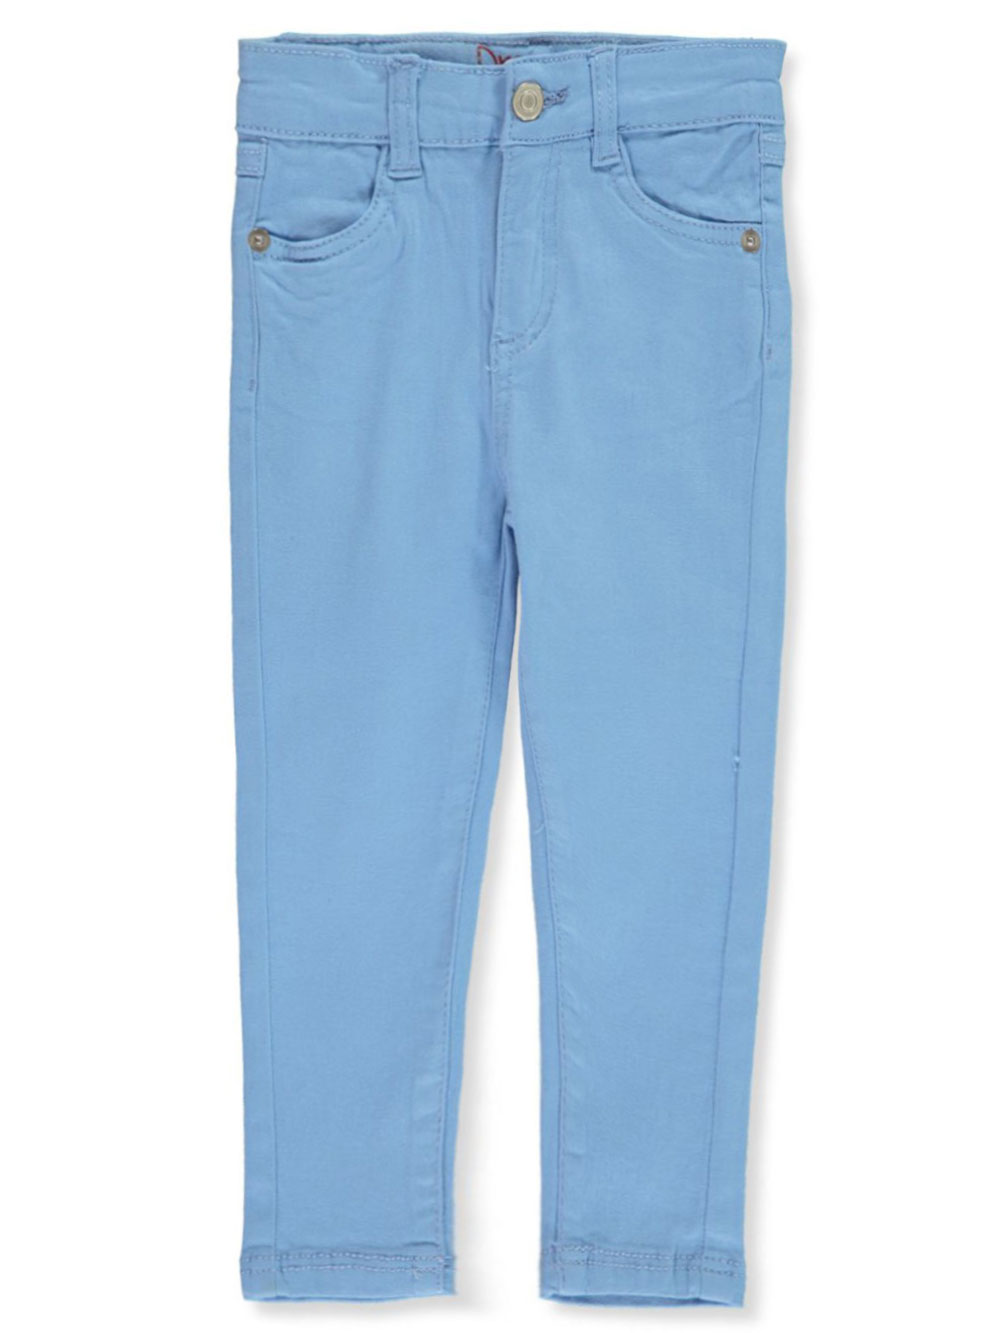 Girls' Stretch Twill Jeans